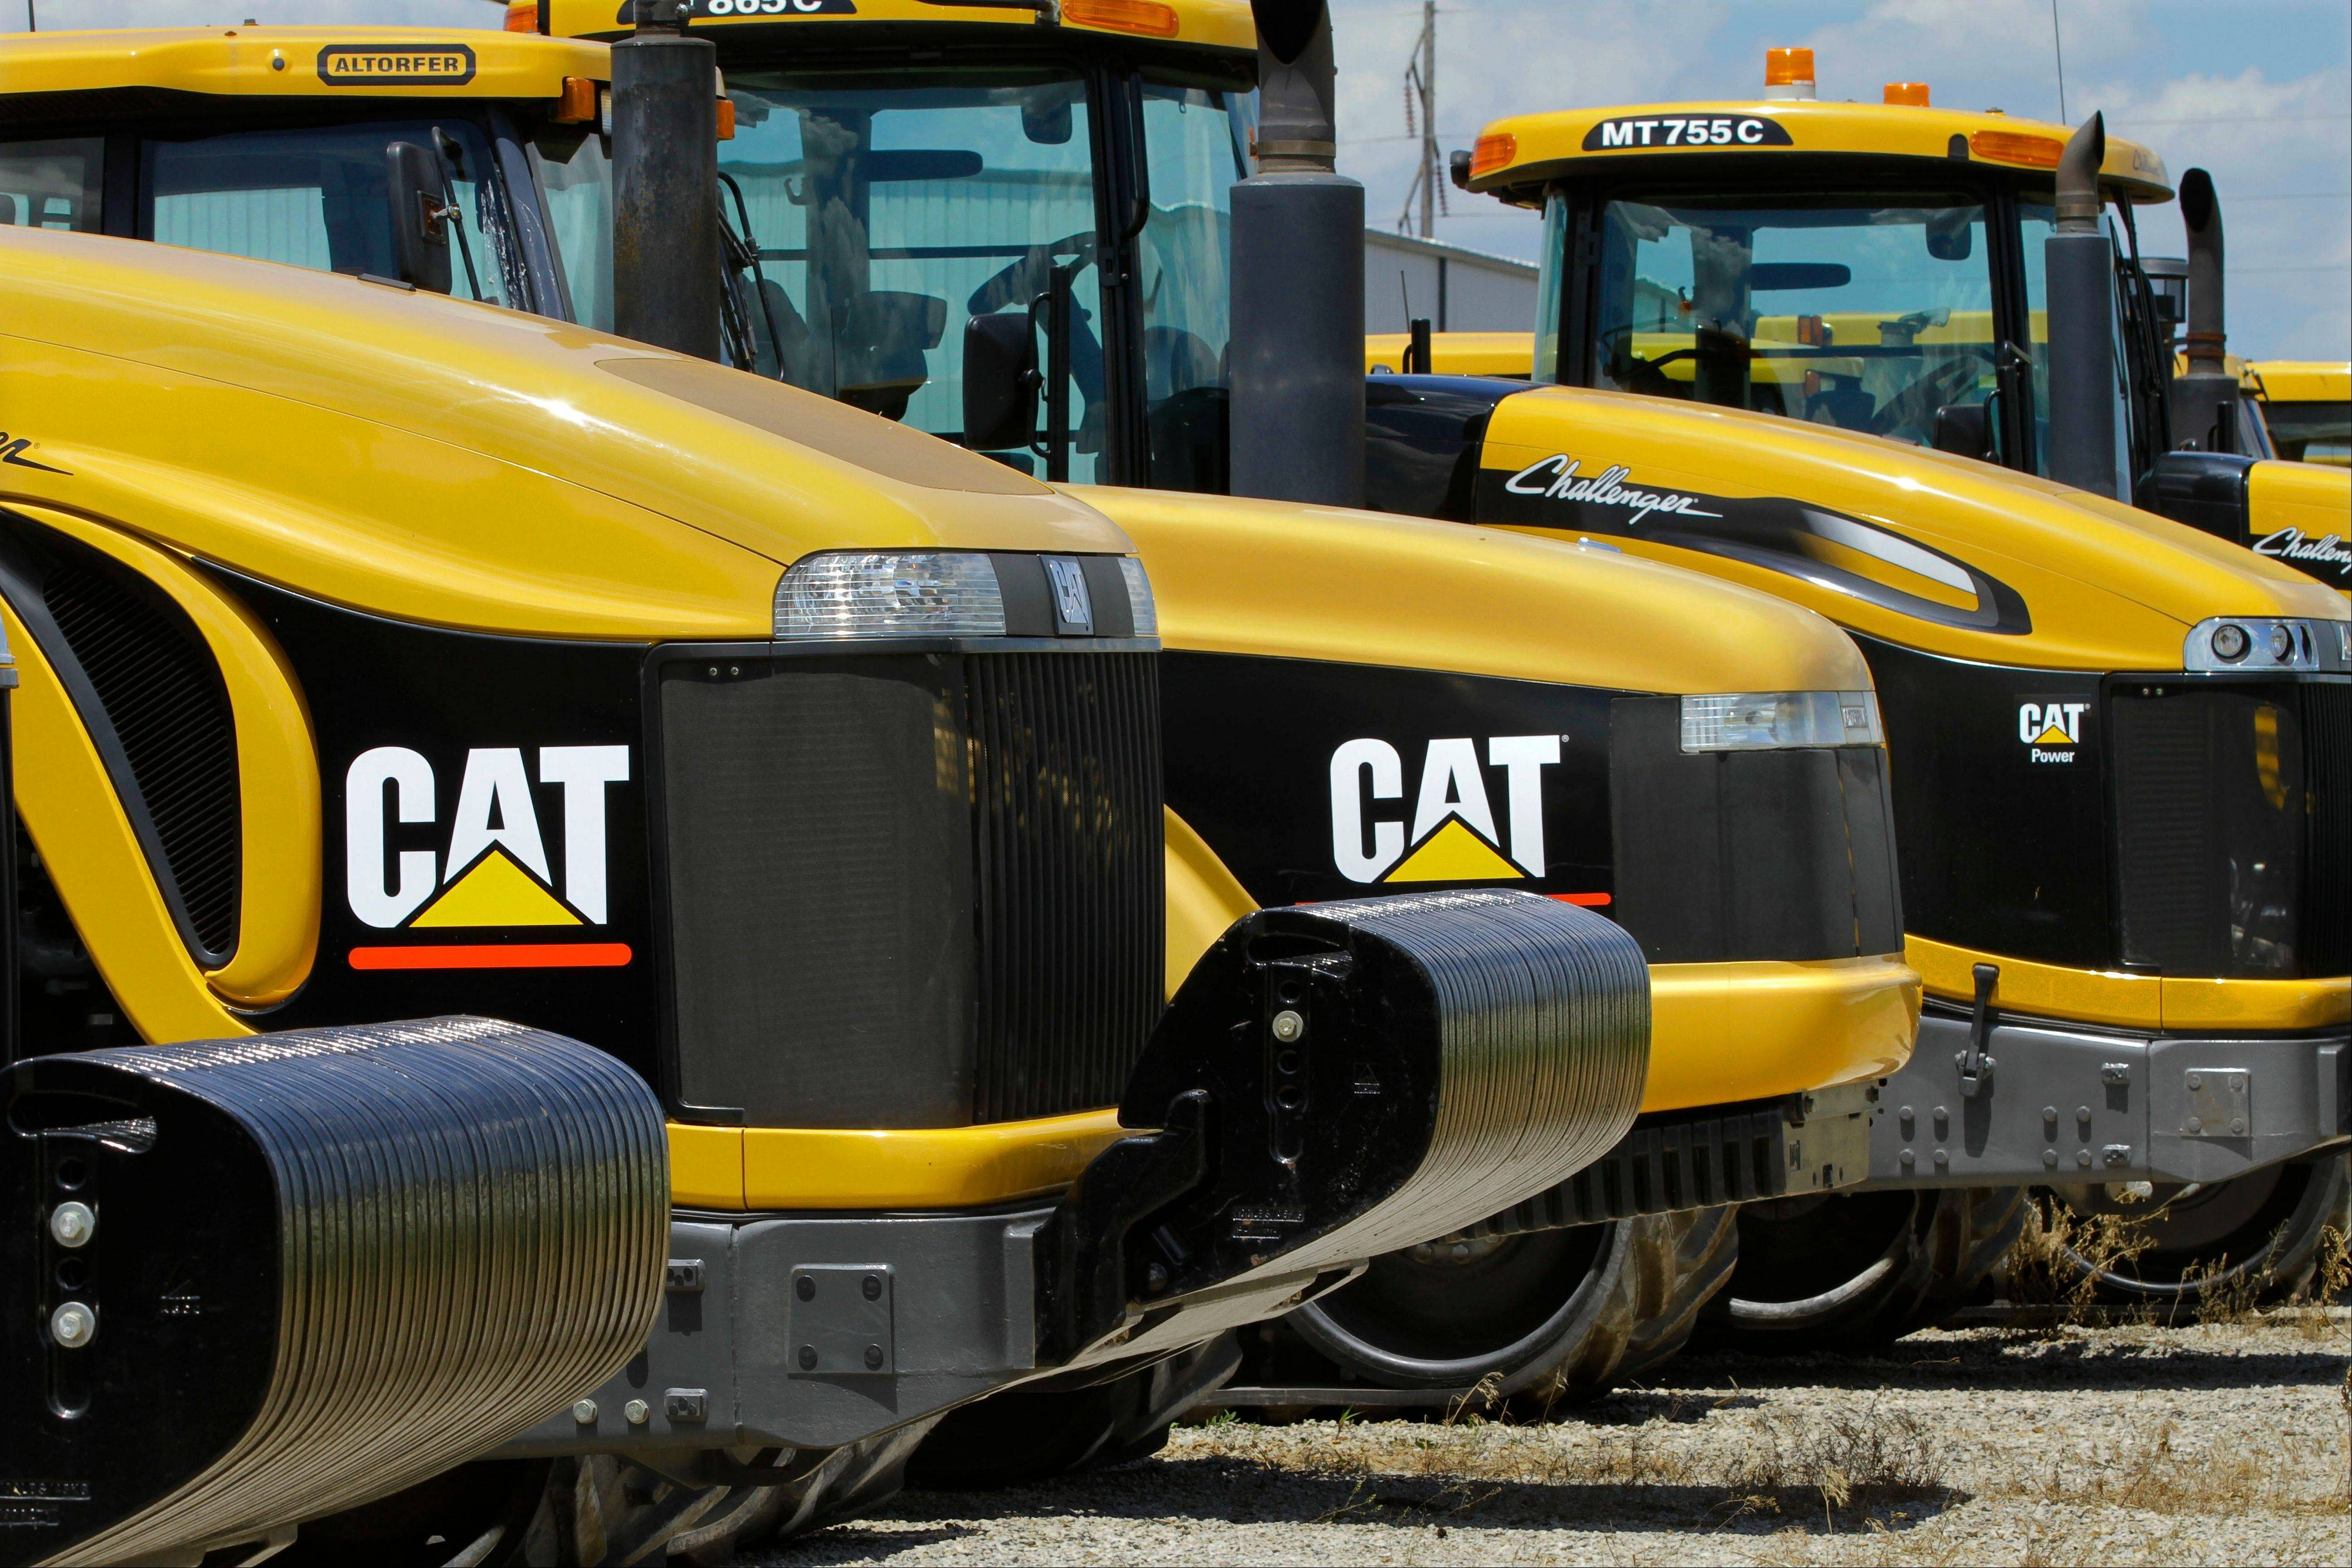 Peoria-based Caterpillar cut its profit and revenue guidance on Monday, Oct. 22, 2012, saying the world�s economic conditions �are weaker than we had previously expected.�